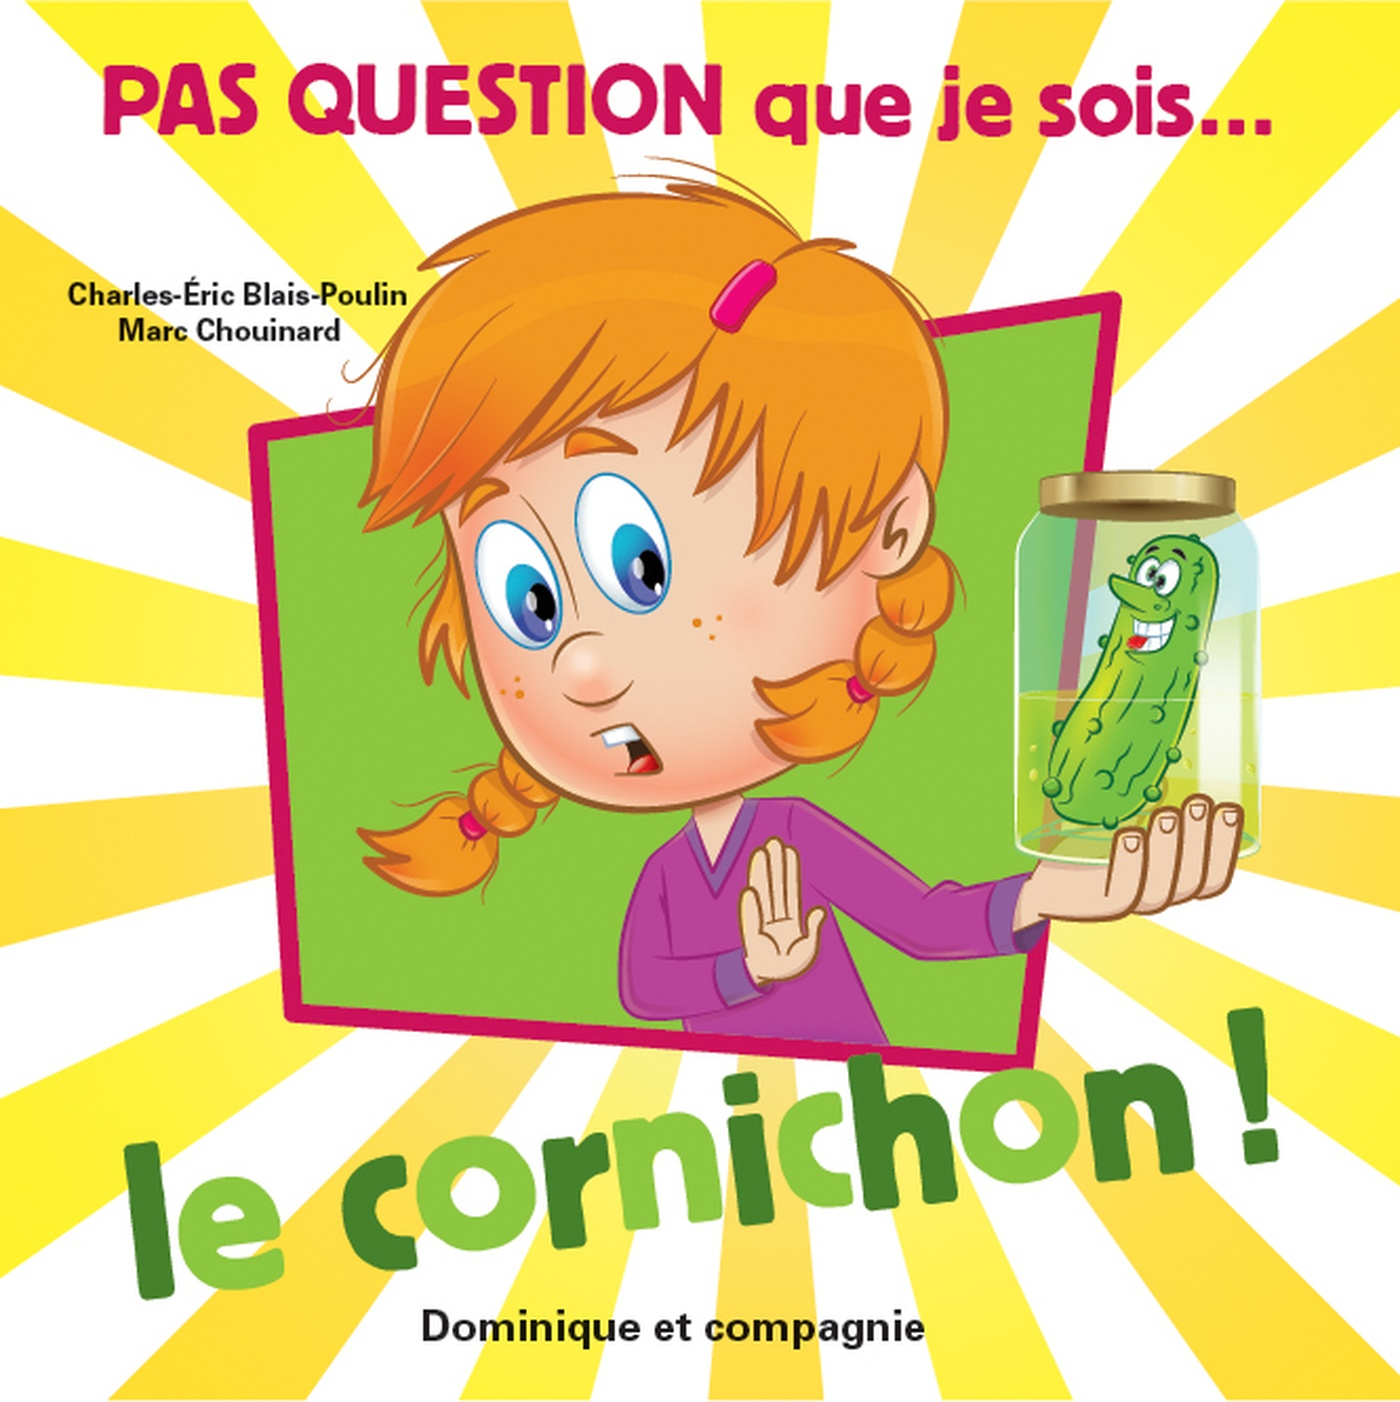 Marc Chouinard - Pas question que je sois le cornichon ! couverture